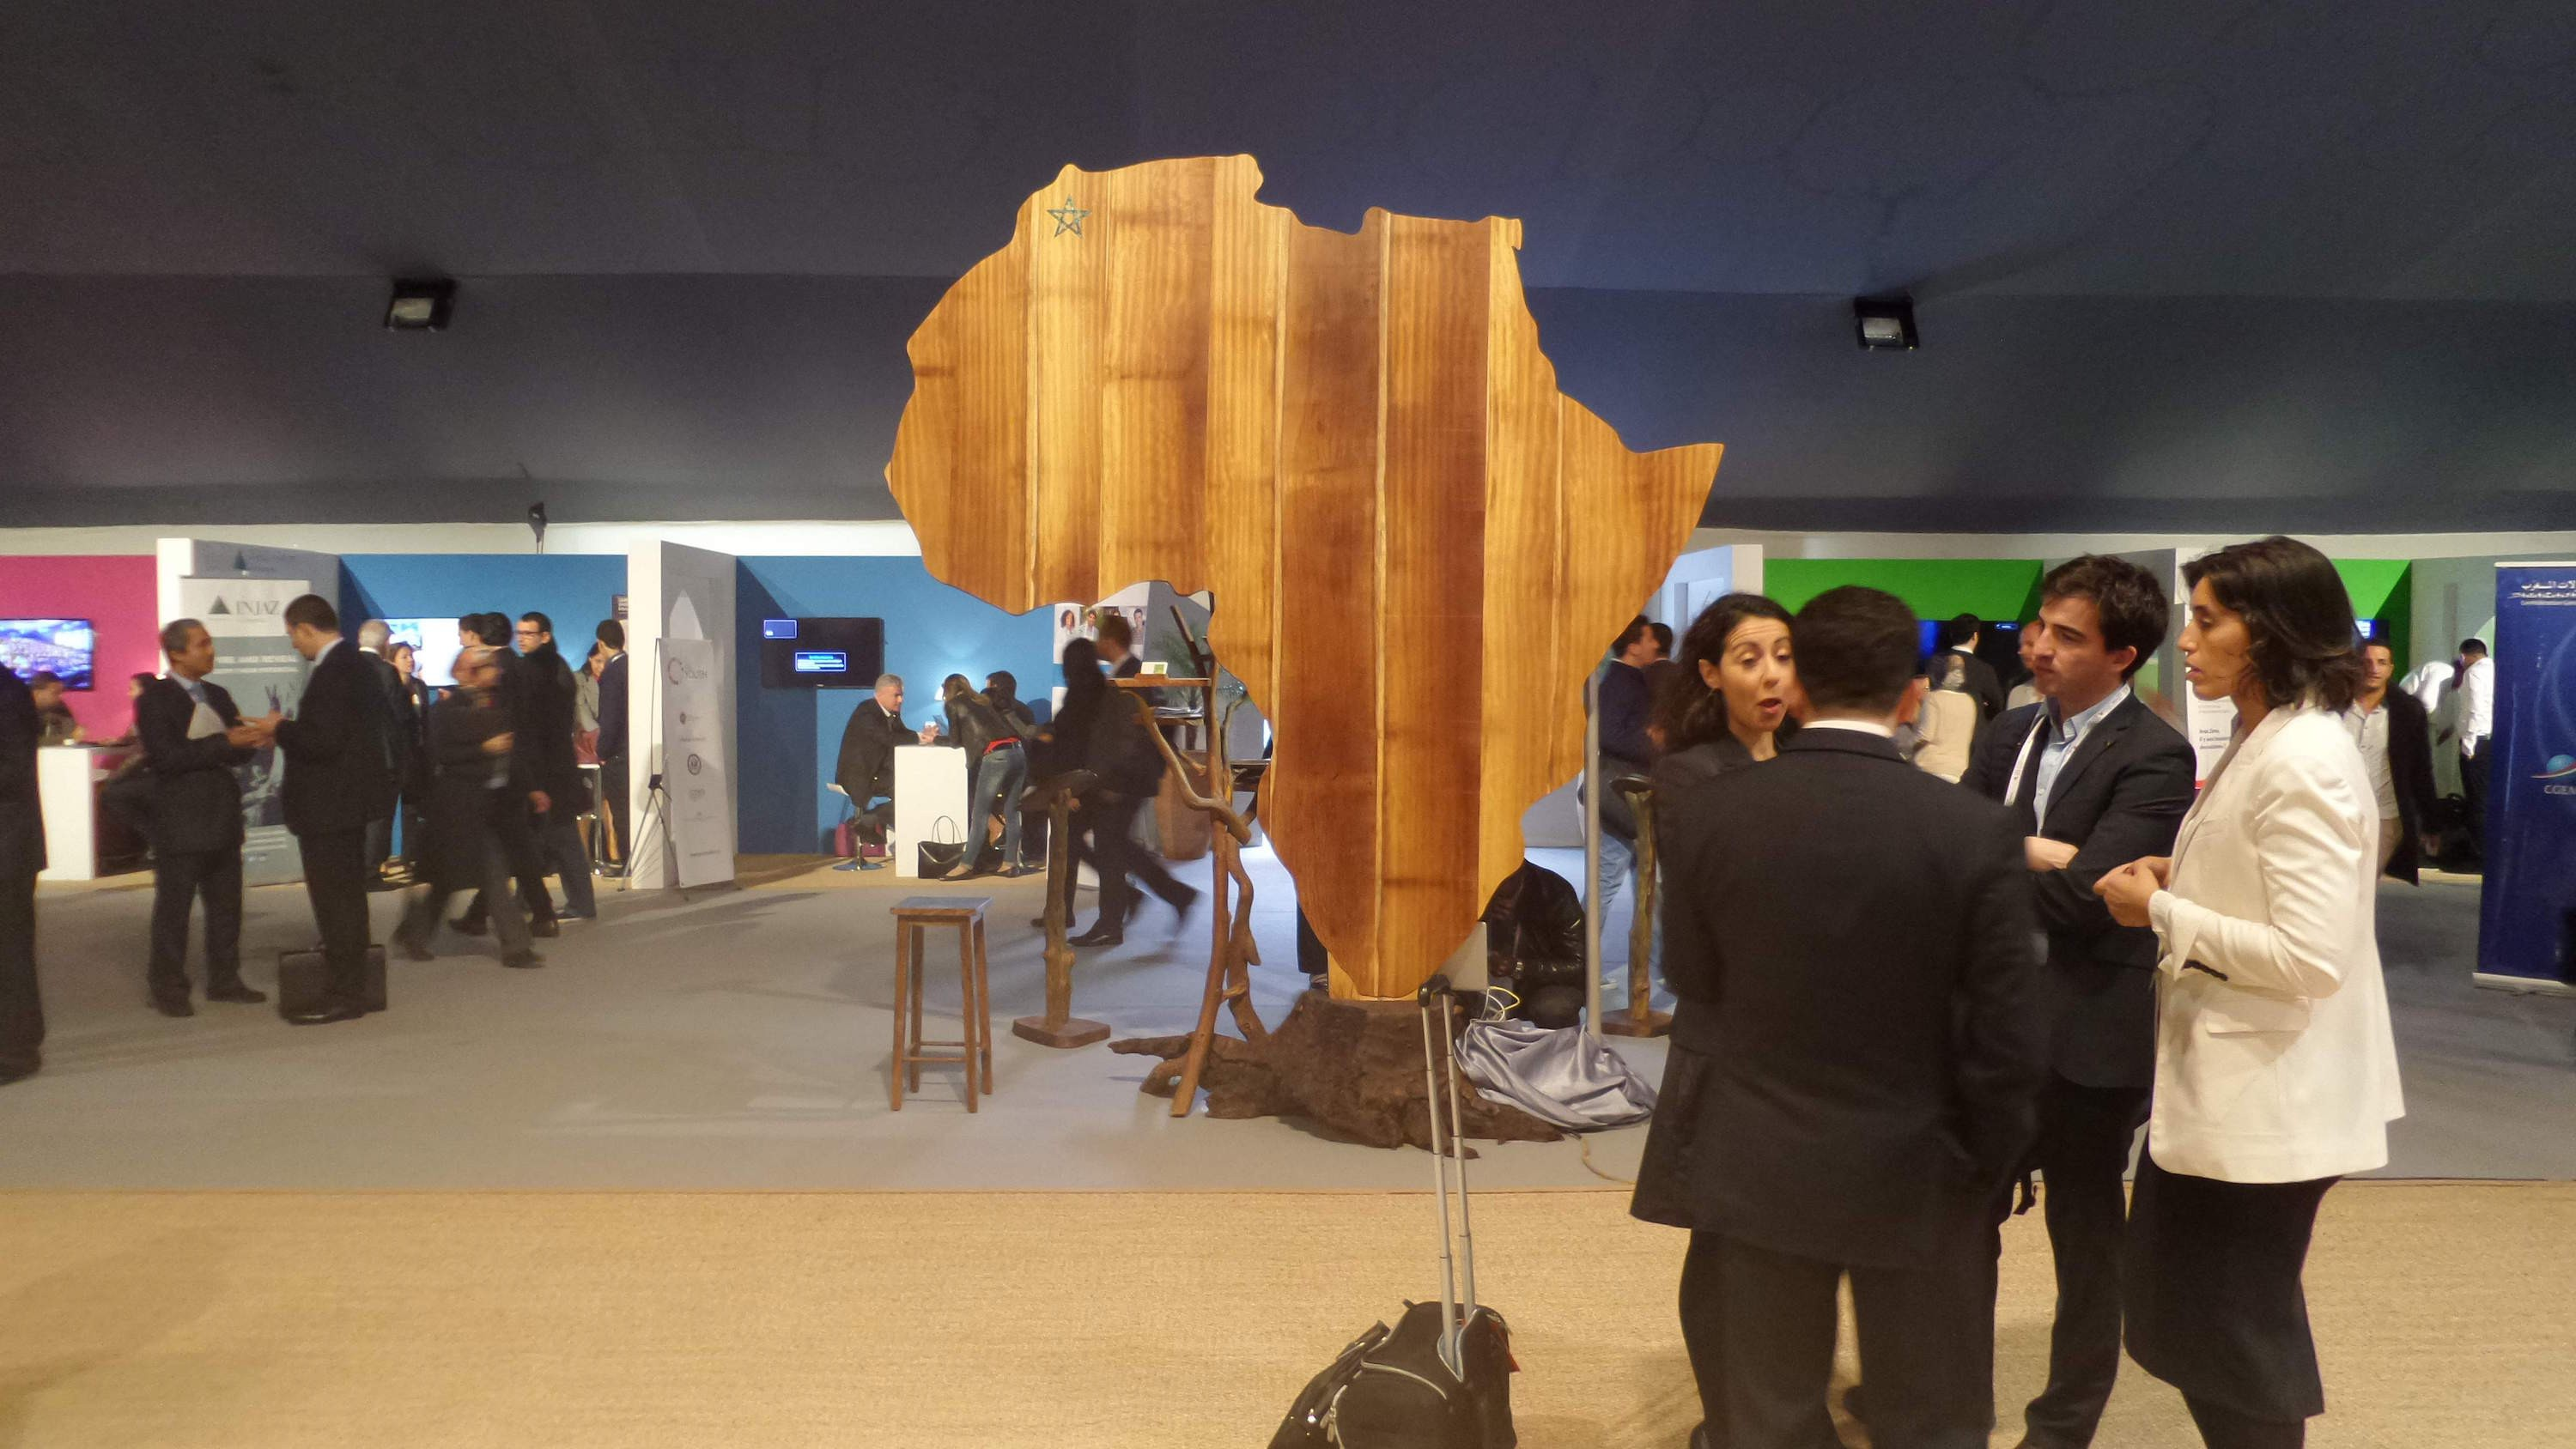 Africa sculpture - Global Entrepreneurship Summit - Marrakech